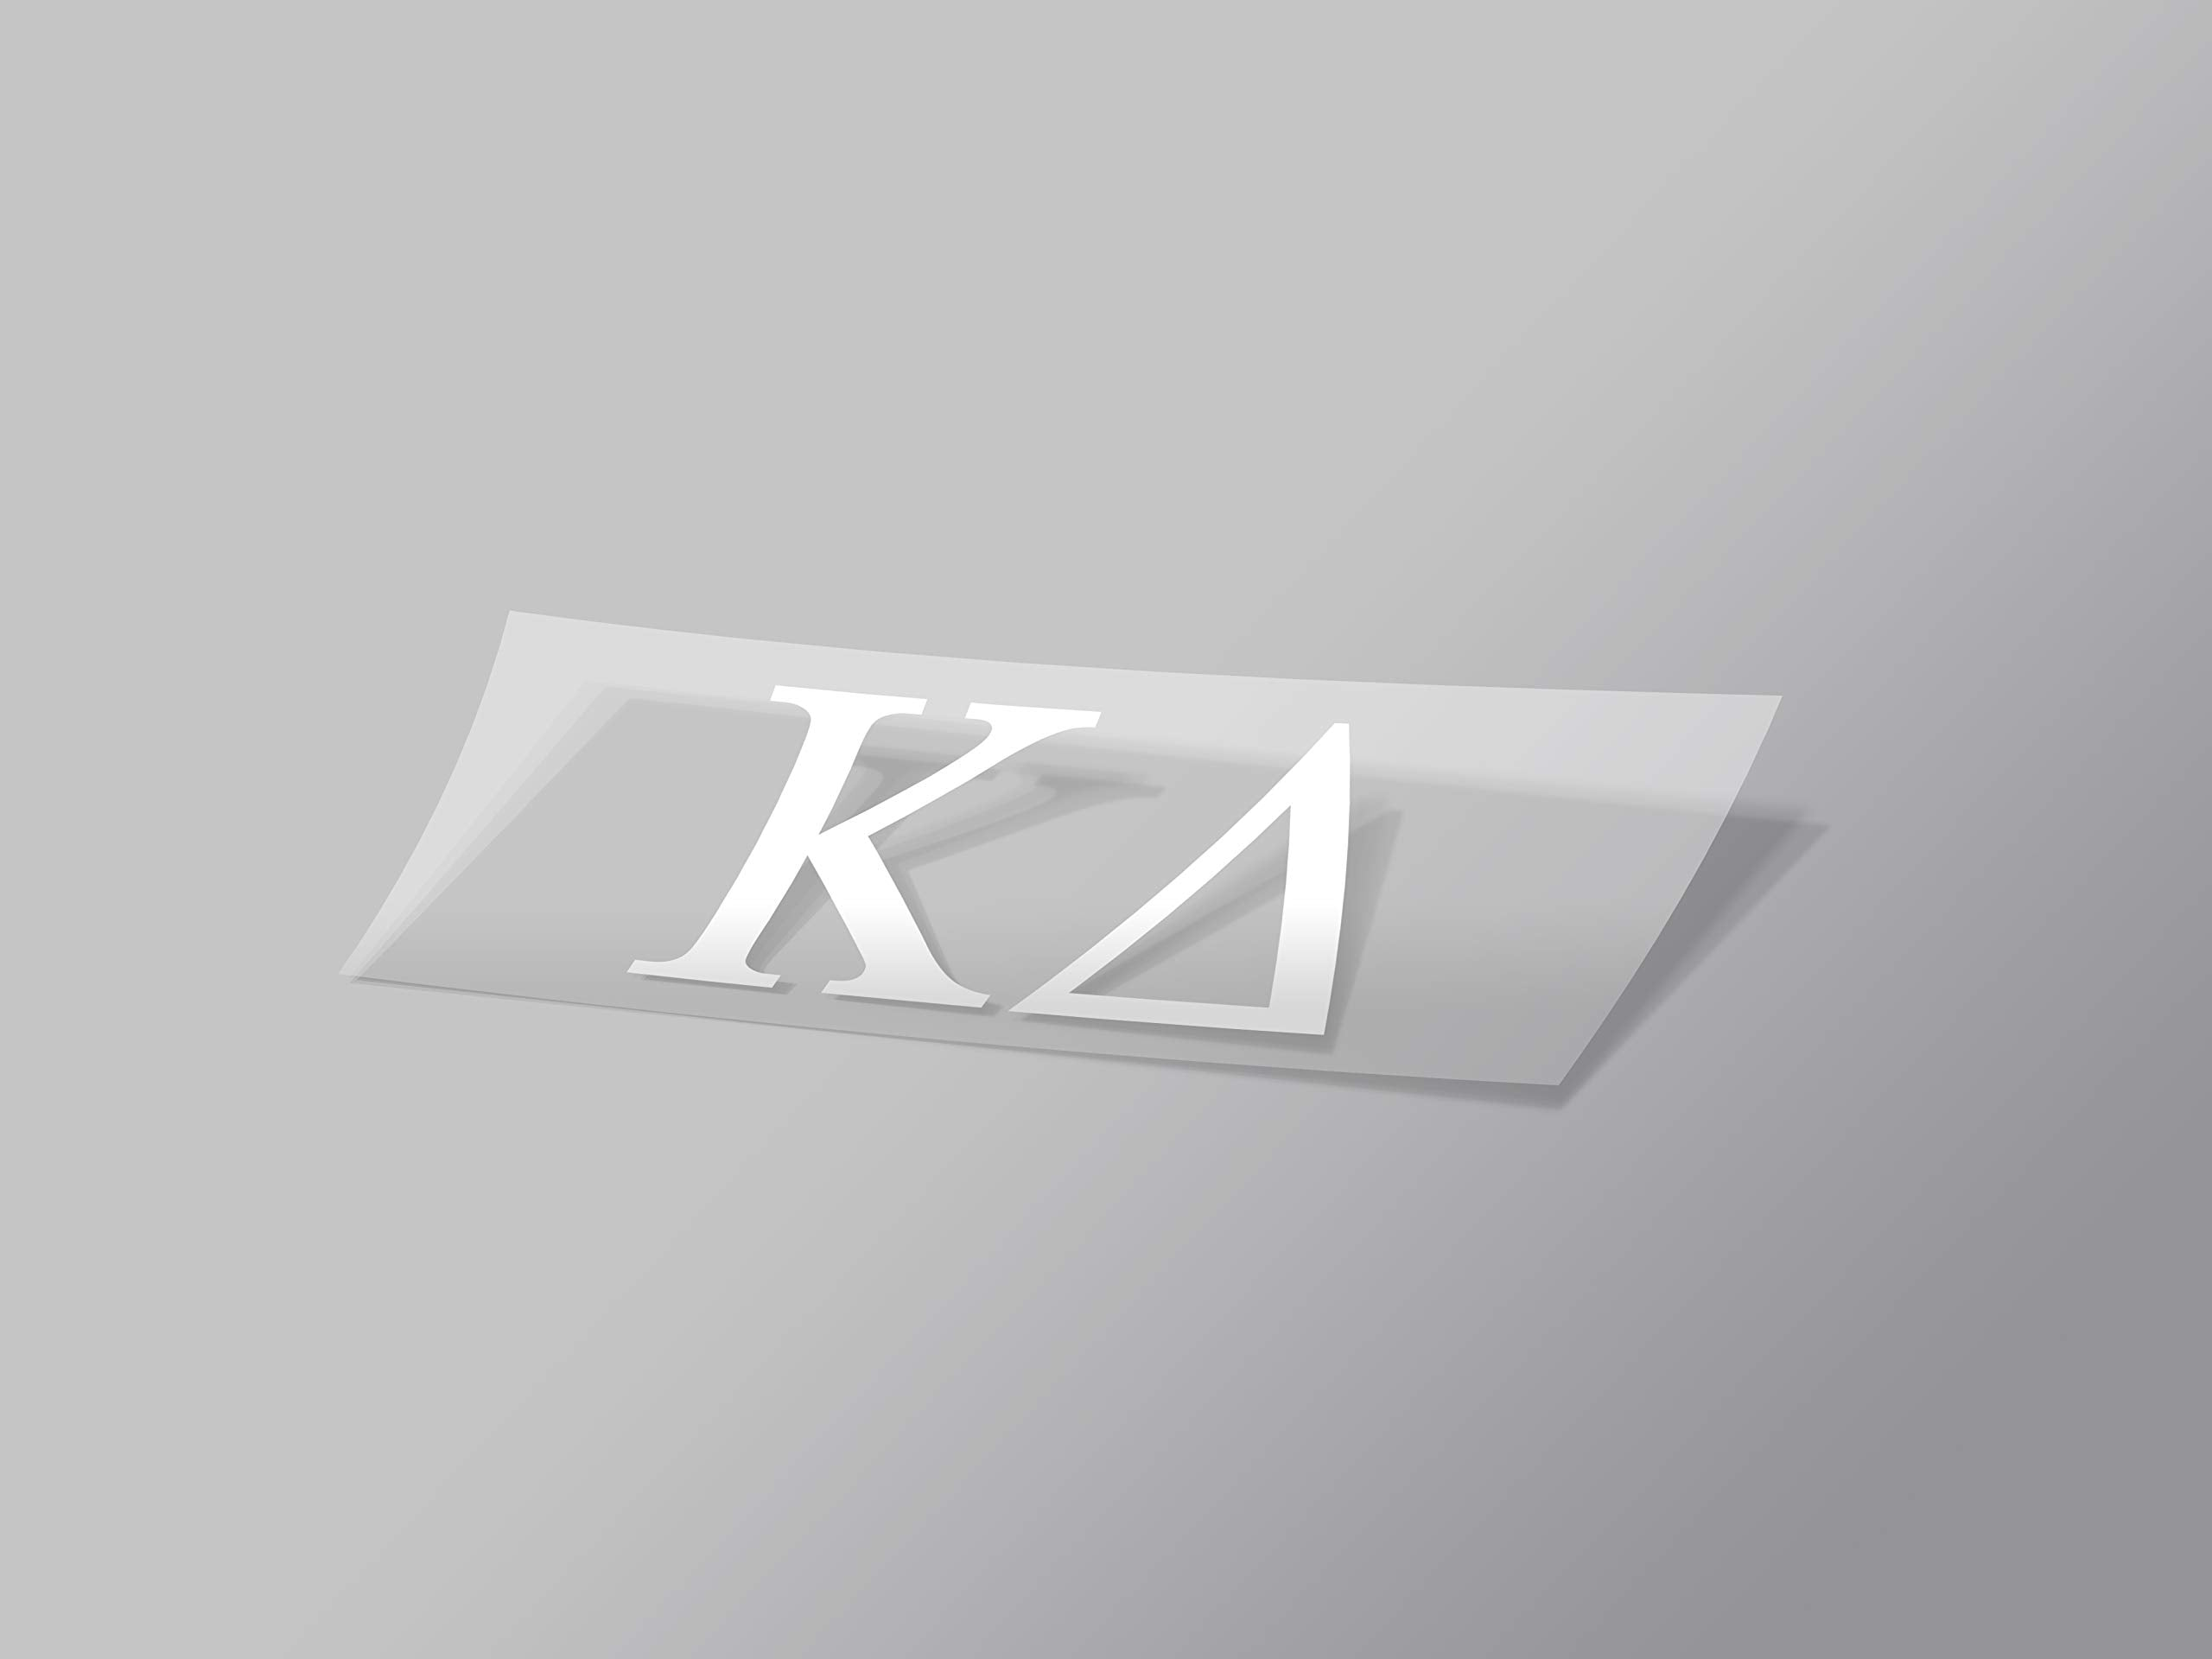 "Kappa Delta Sticker Greek Sorority Decal for Car, Laptop, Windows, Officially Licensed Product, Monogram Design 2.5"" Tall - White"